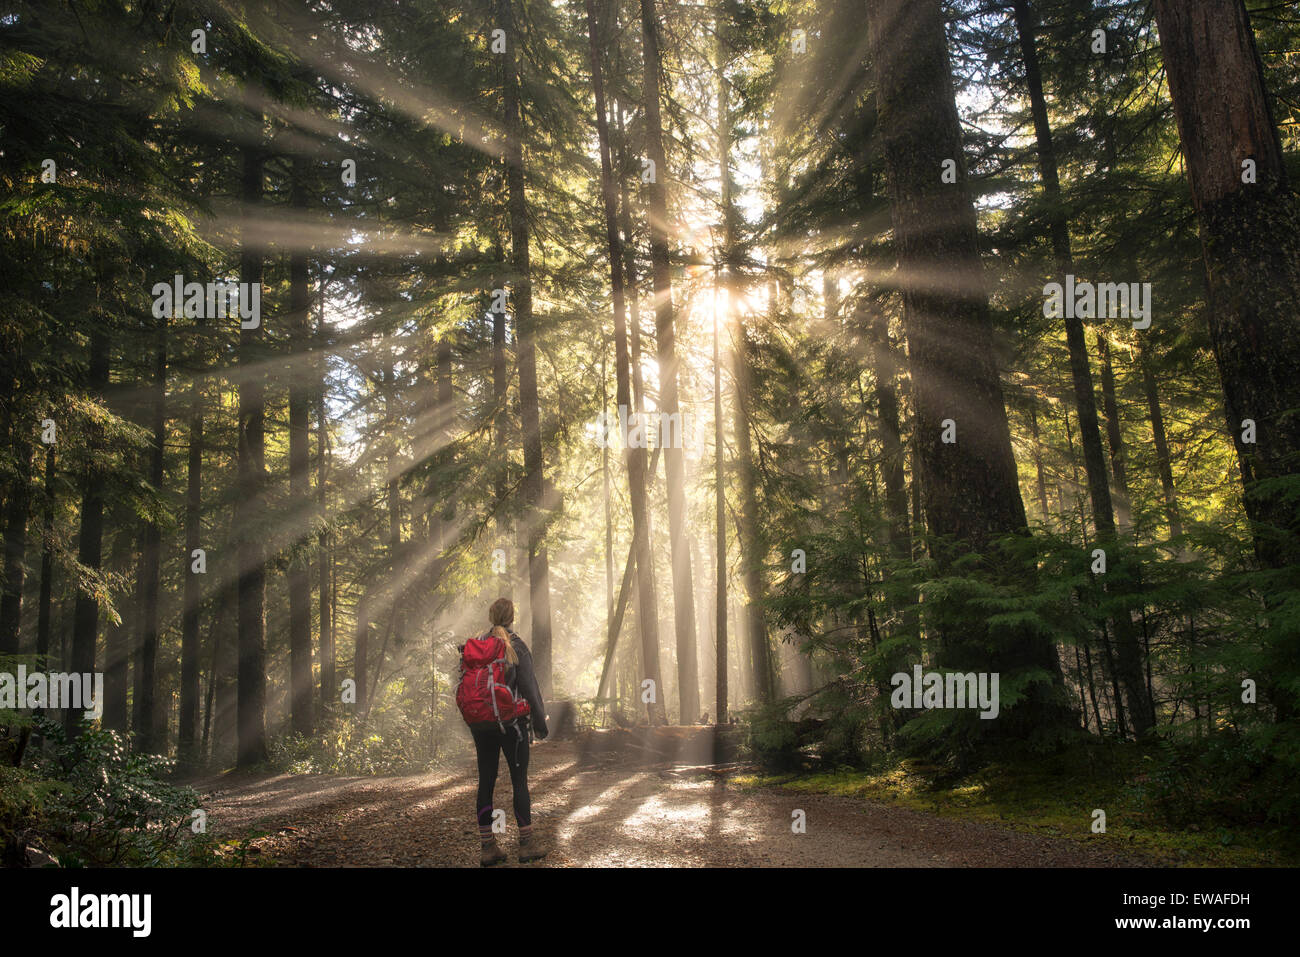 Road/trail and hiker along Opal Creek with sunburst/godrays. Opal Creek Wilderness, Oregon - Stock Image